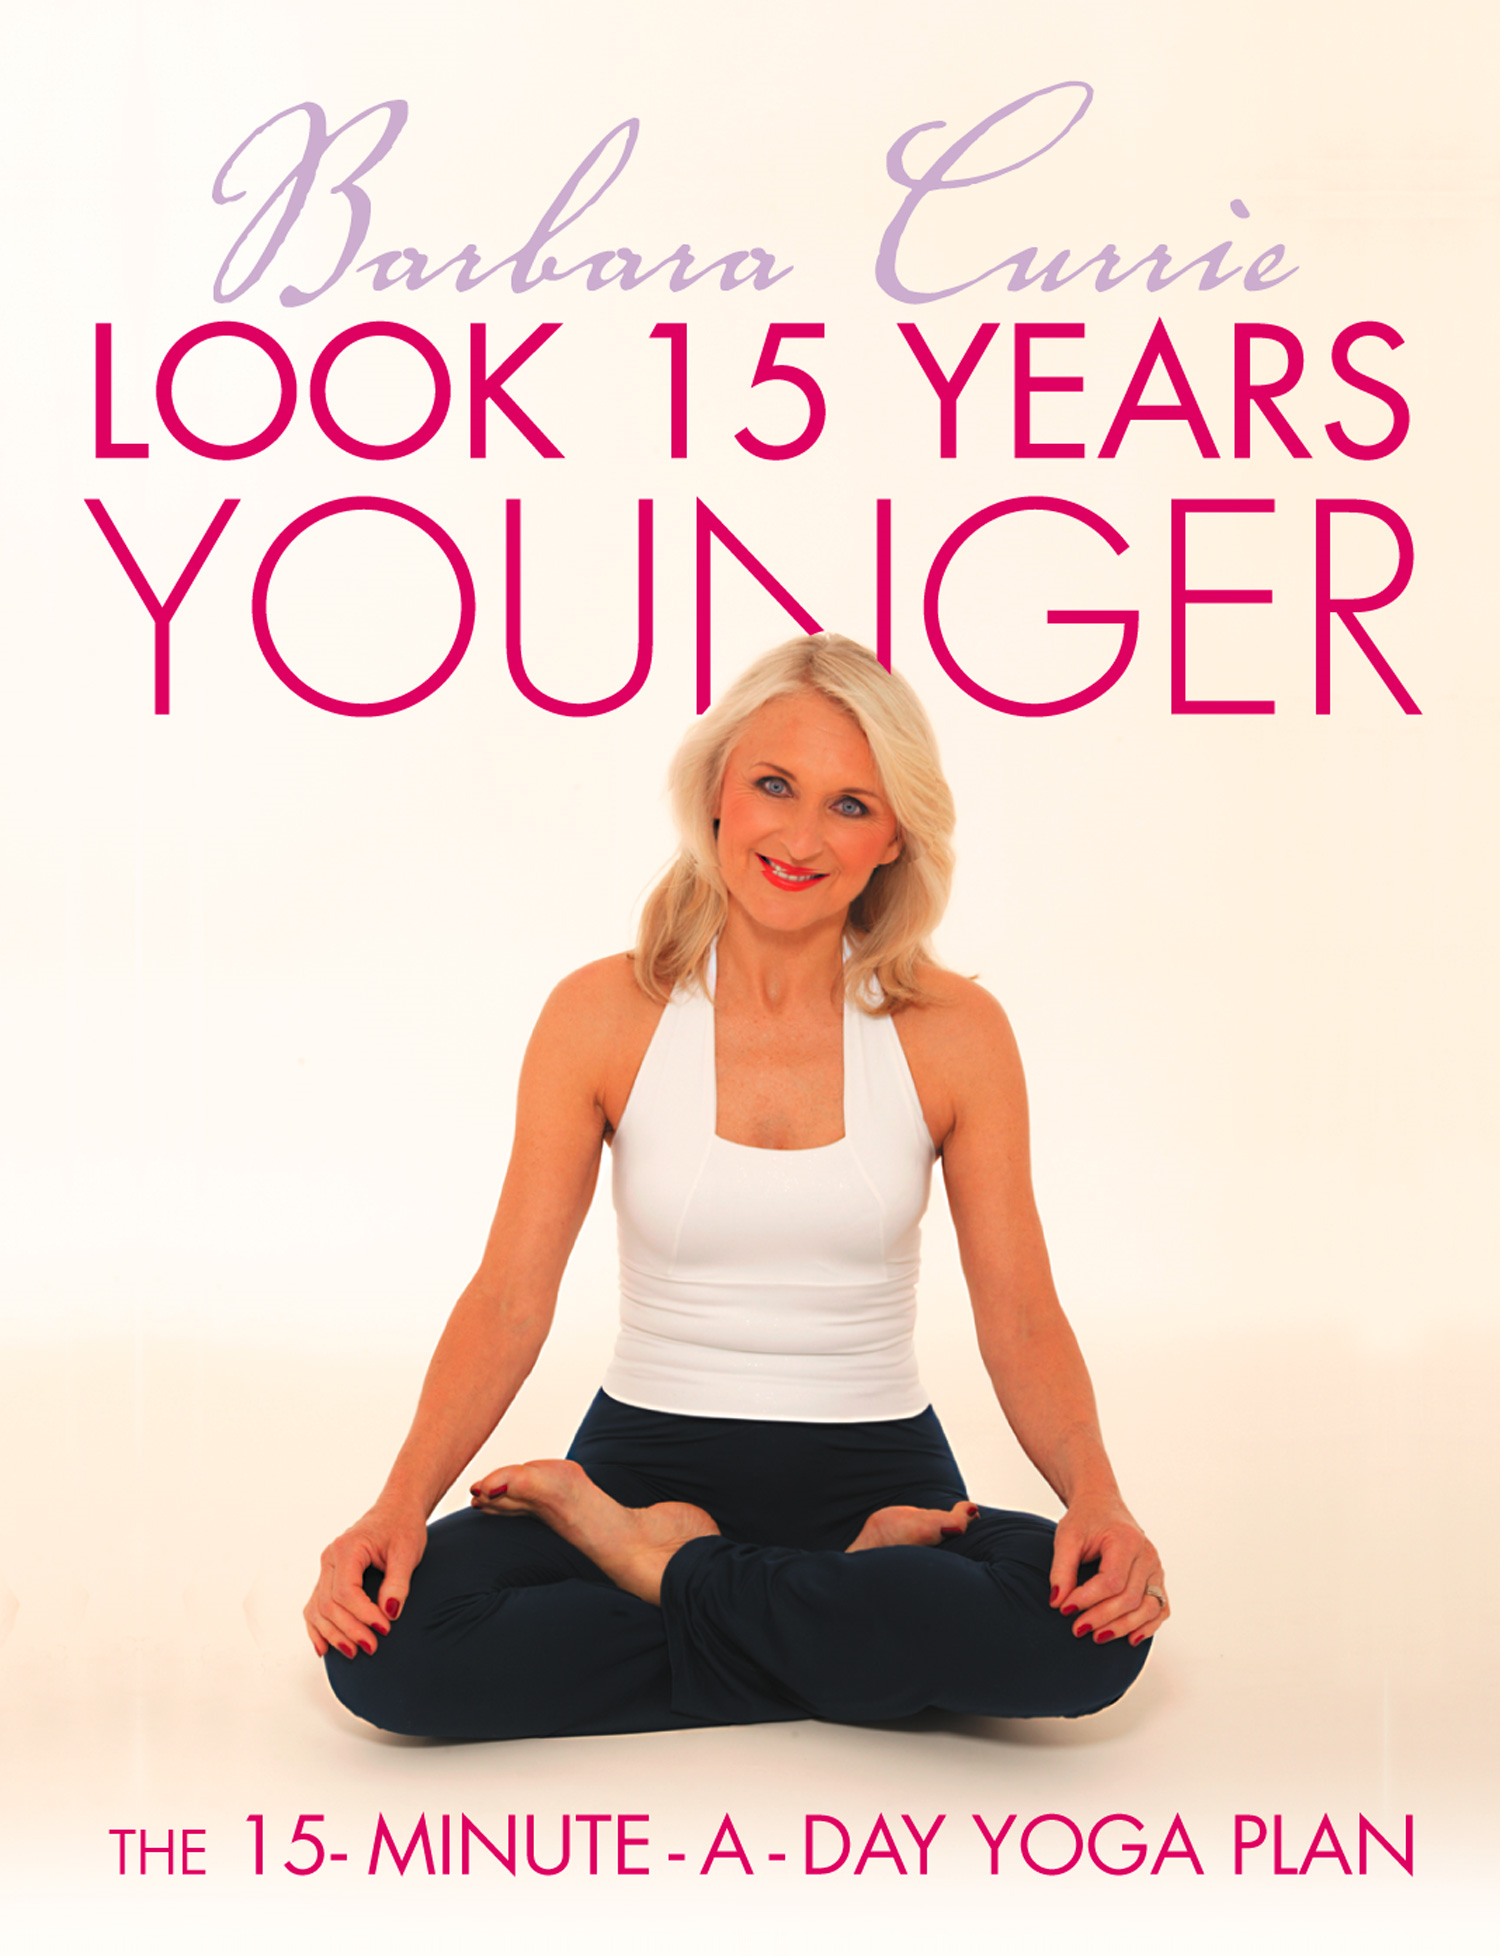 Look 15 Years Younger: The 15-Minute-a-Day Yoga Plan